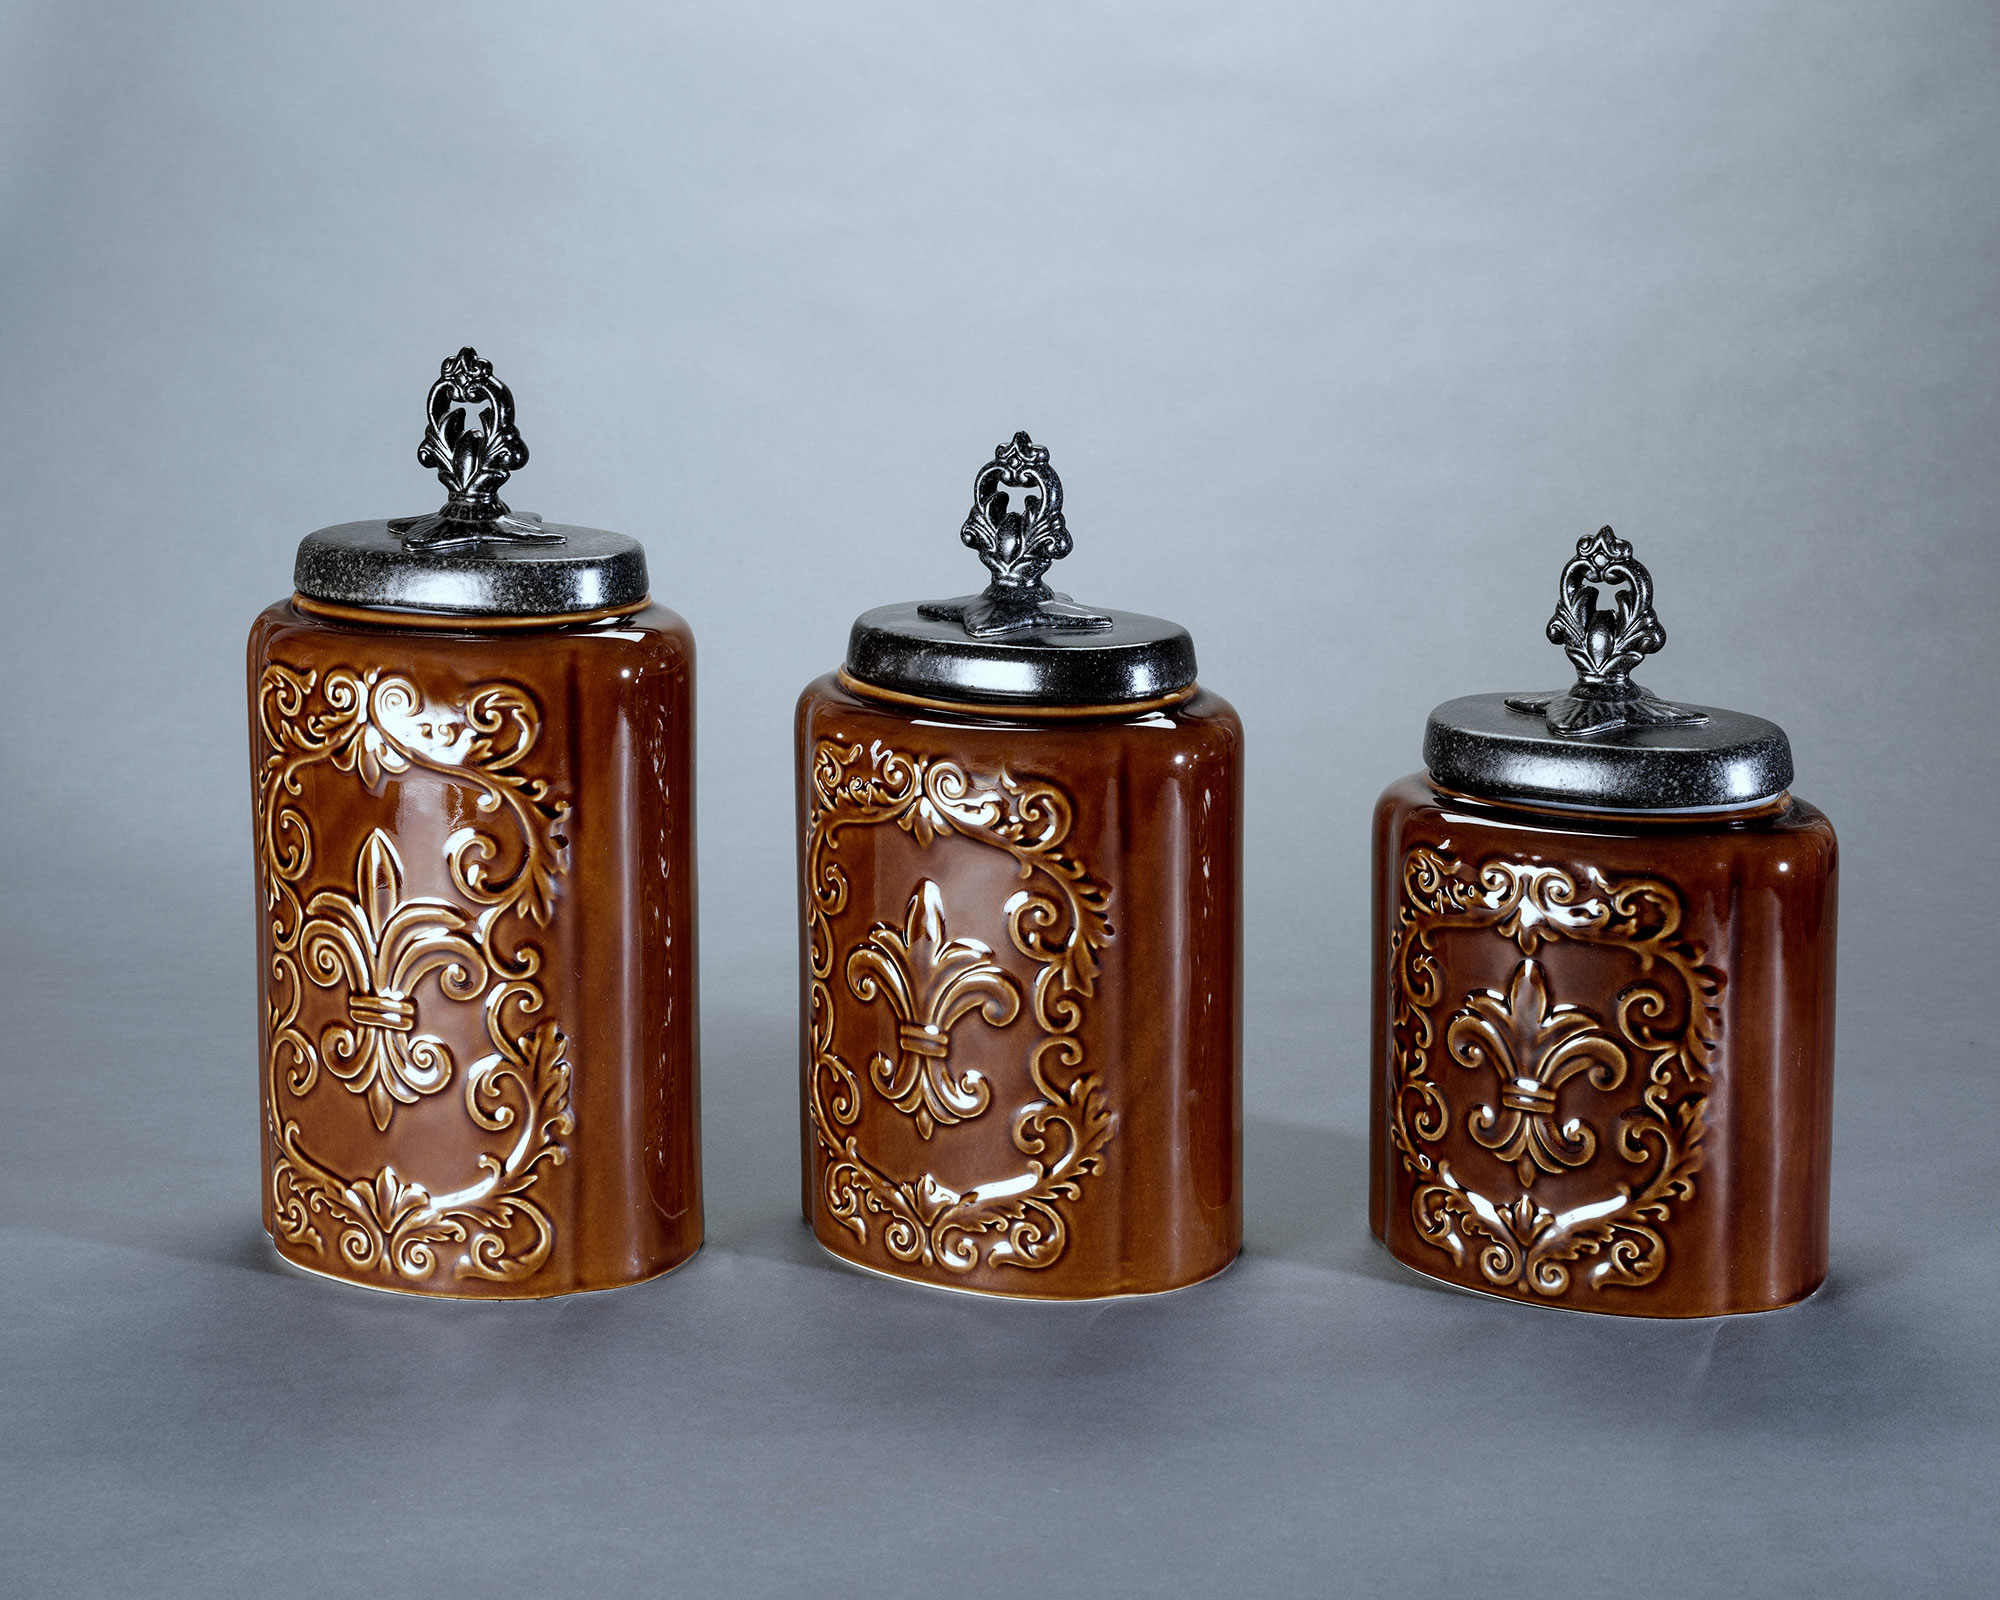 Set of ornately decorated, glazed ceramic containers with decorative finials.